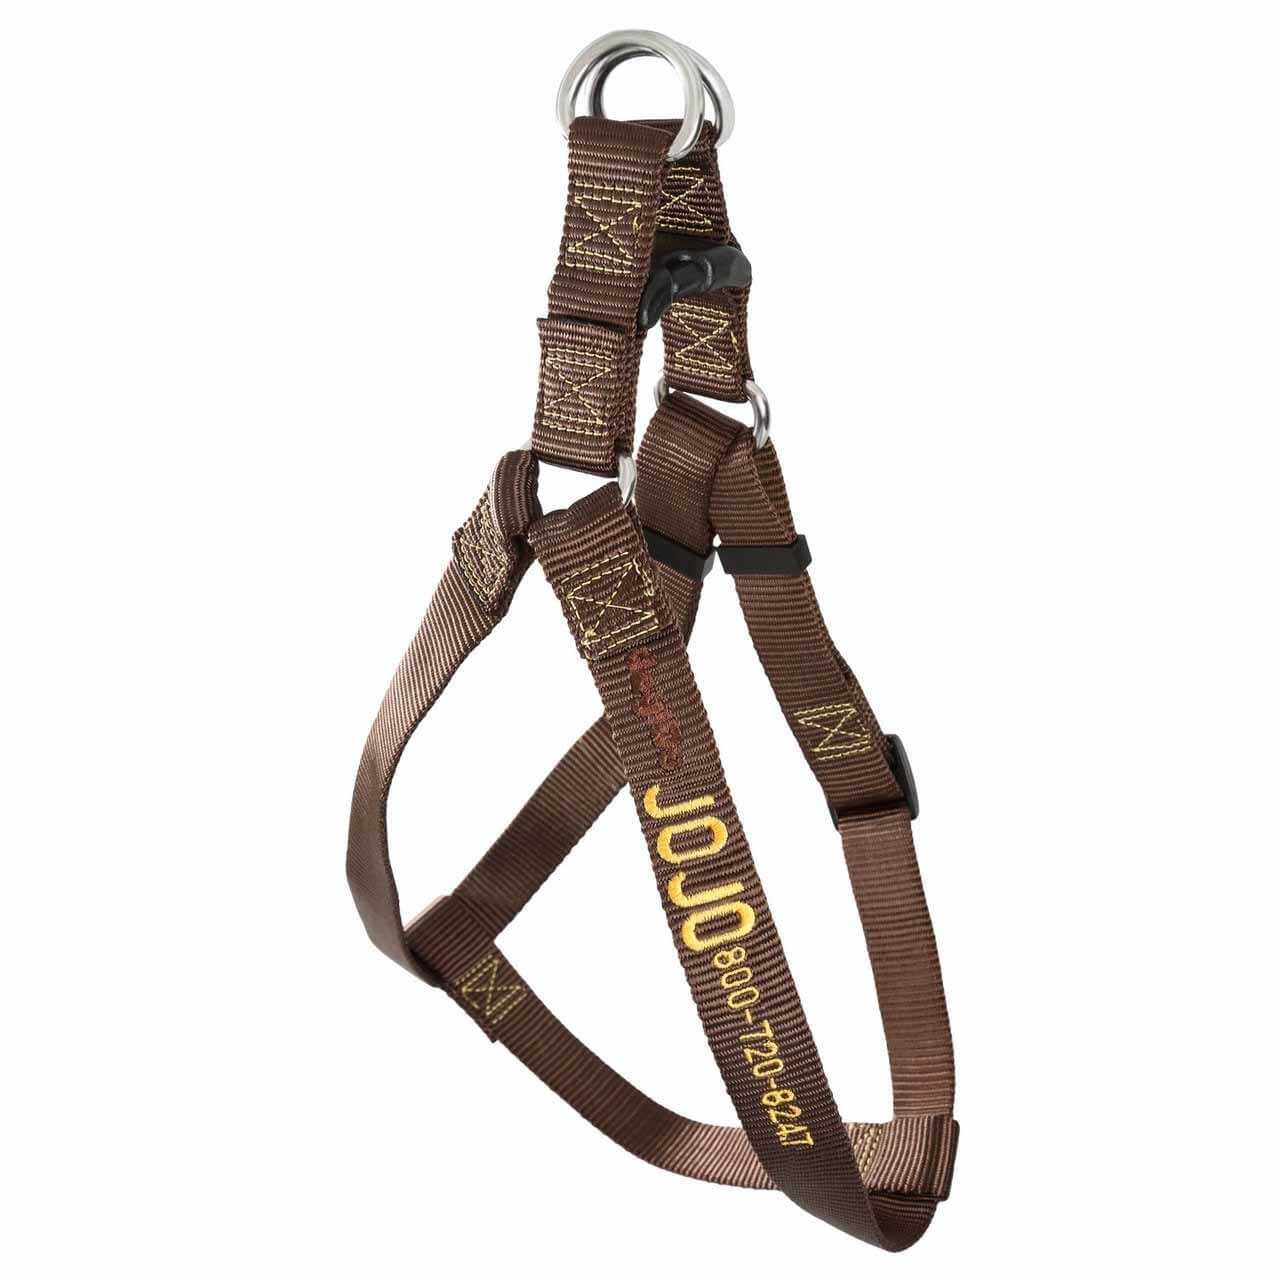 Embroidered Nylon Step-In Dog Harness Brown